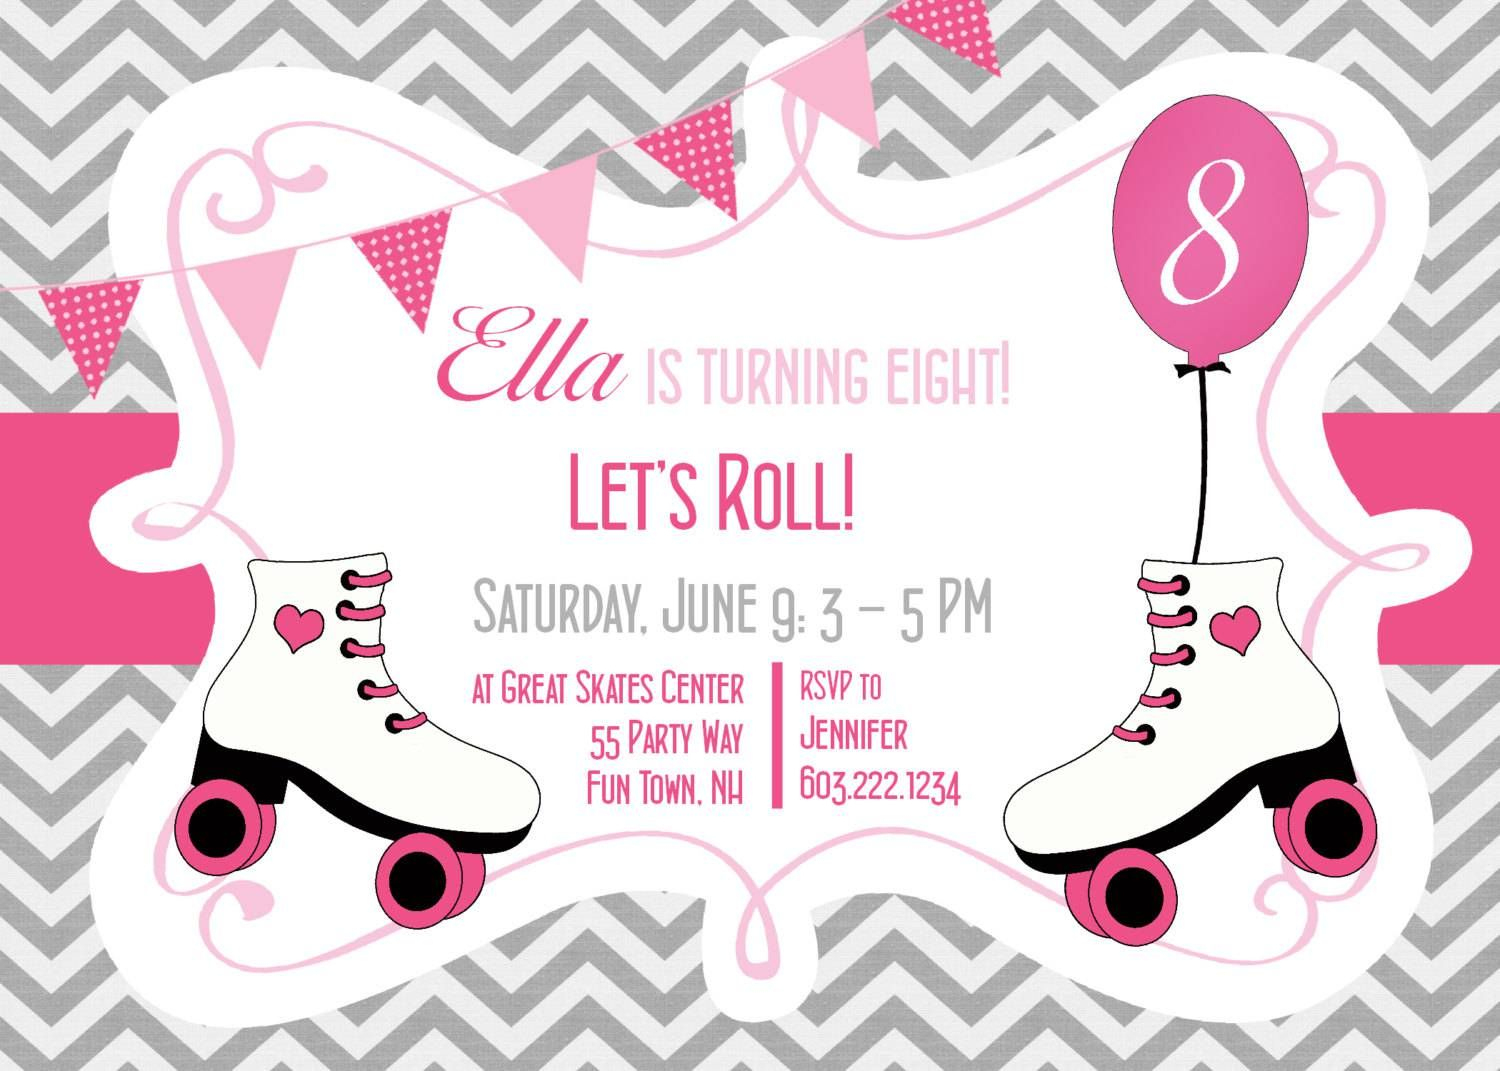 Ice Skating Party Invitations Free Printable | Kids Birthdays In - Free Printable Skateboard Birthday Party Invitations